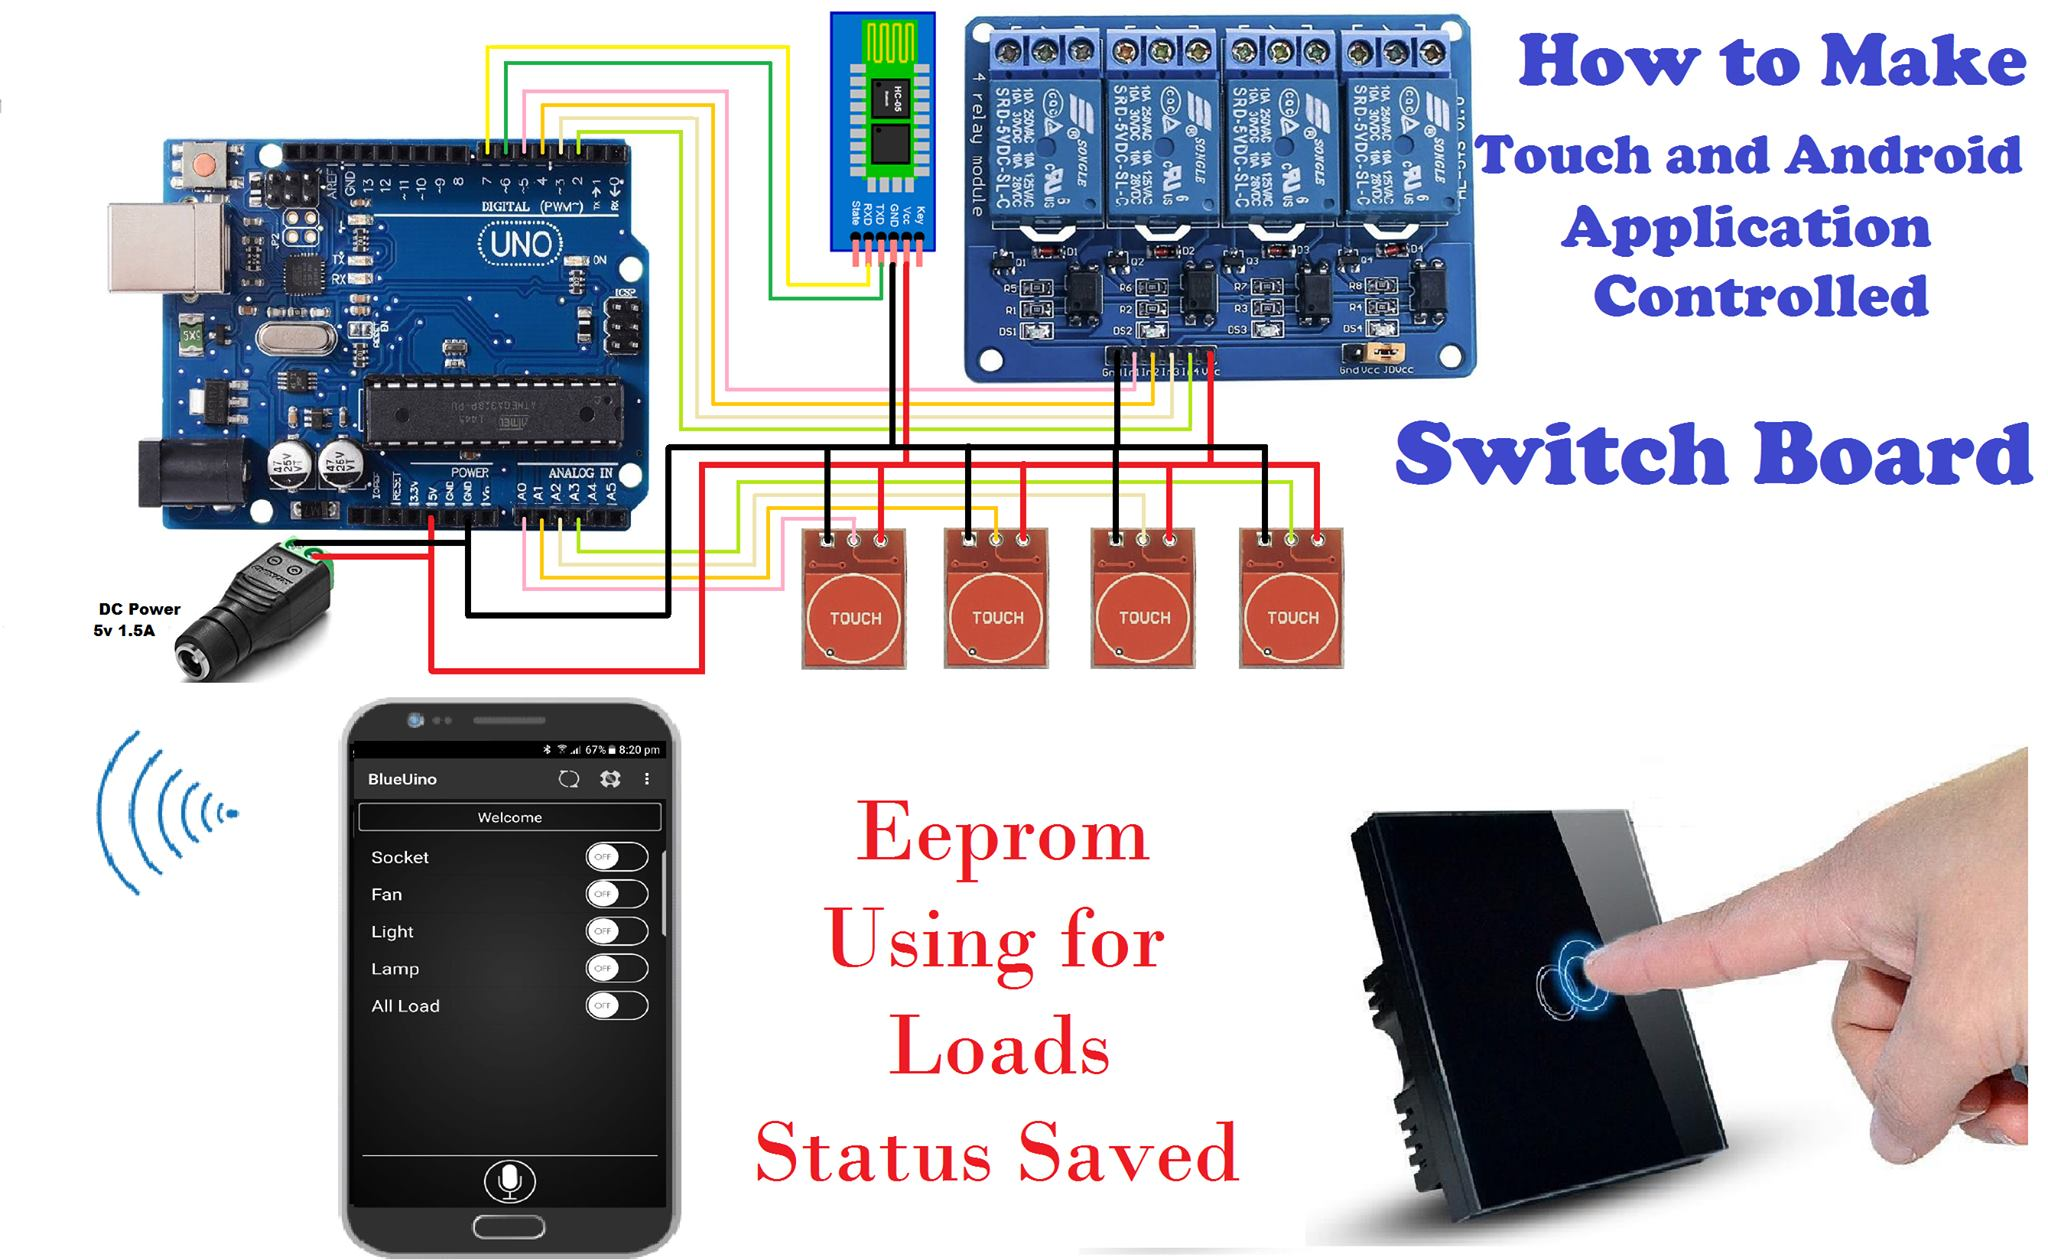 How to make touch and android application controlled switch board using the eeprom for status saved o0amqdnf6j